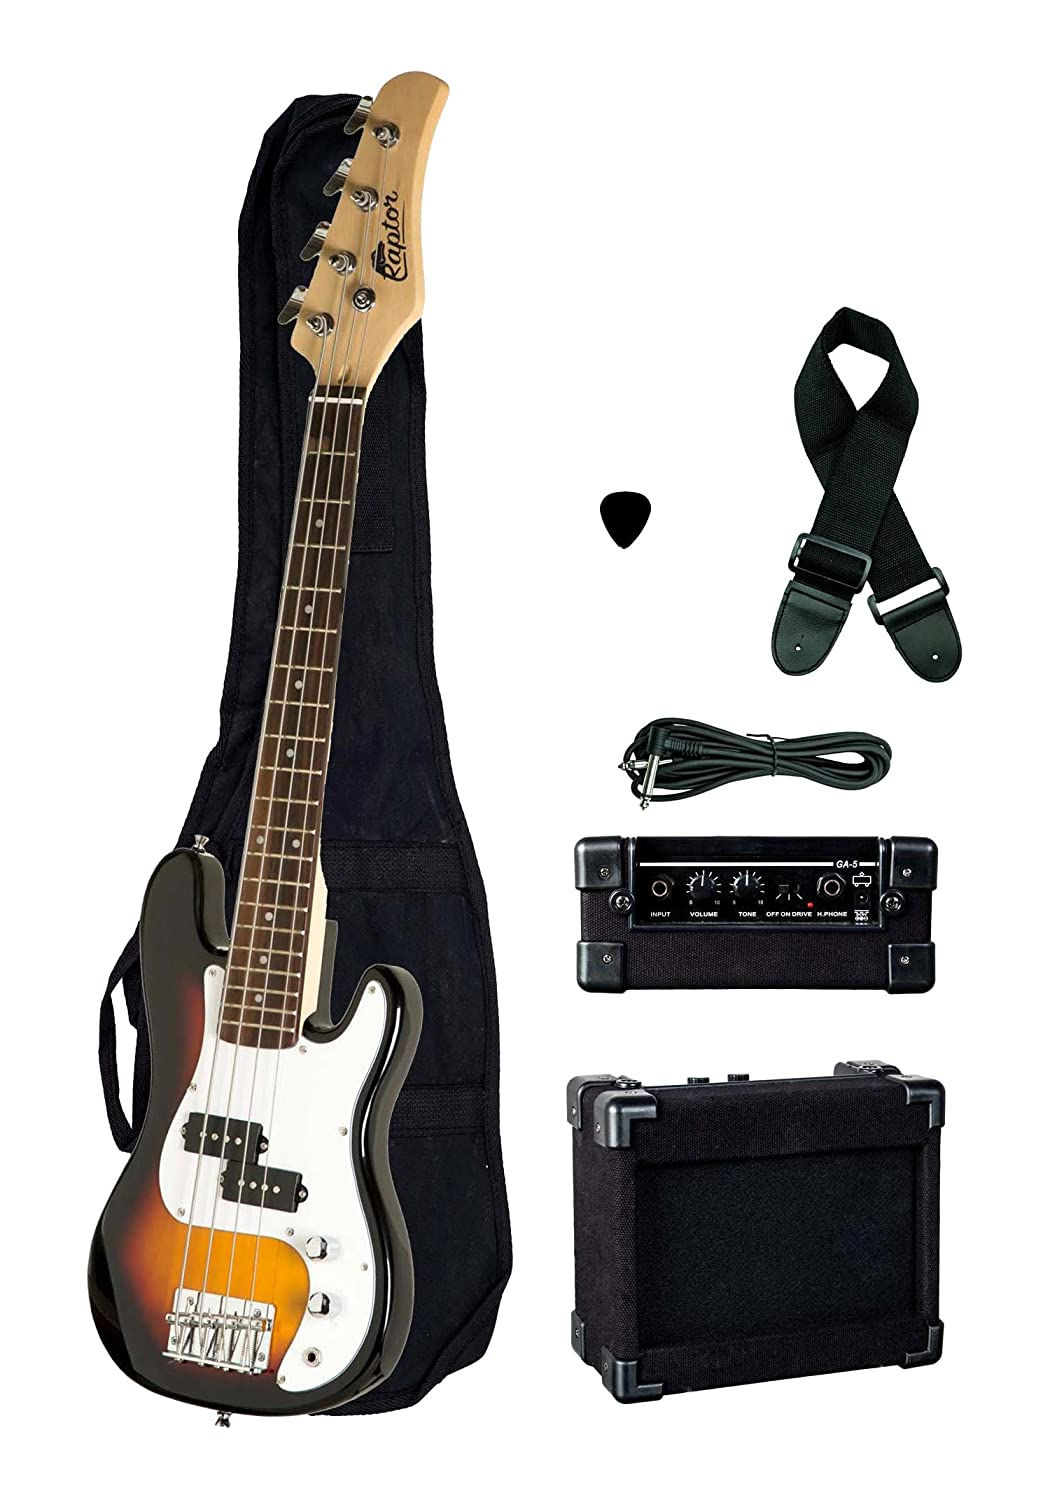 Raptor EB38CO-TS 3/4 Size Kids Junior 4 String Electric P Bass Package, Tobacco-Burst with Gig Bag, Strap, Cable, Pick, 5 W amp, 38